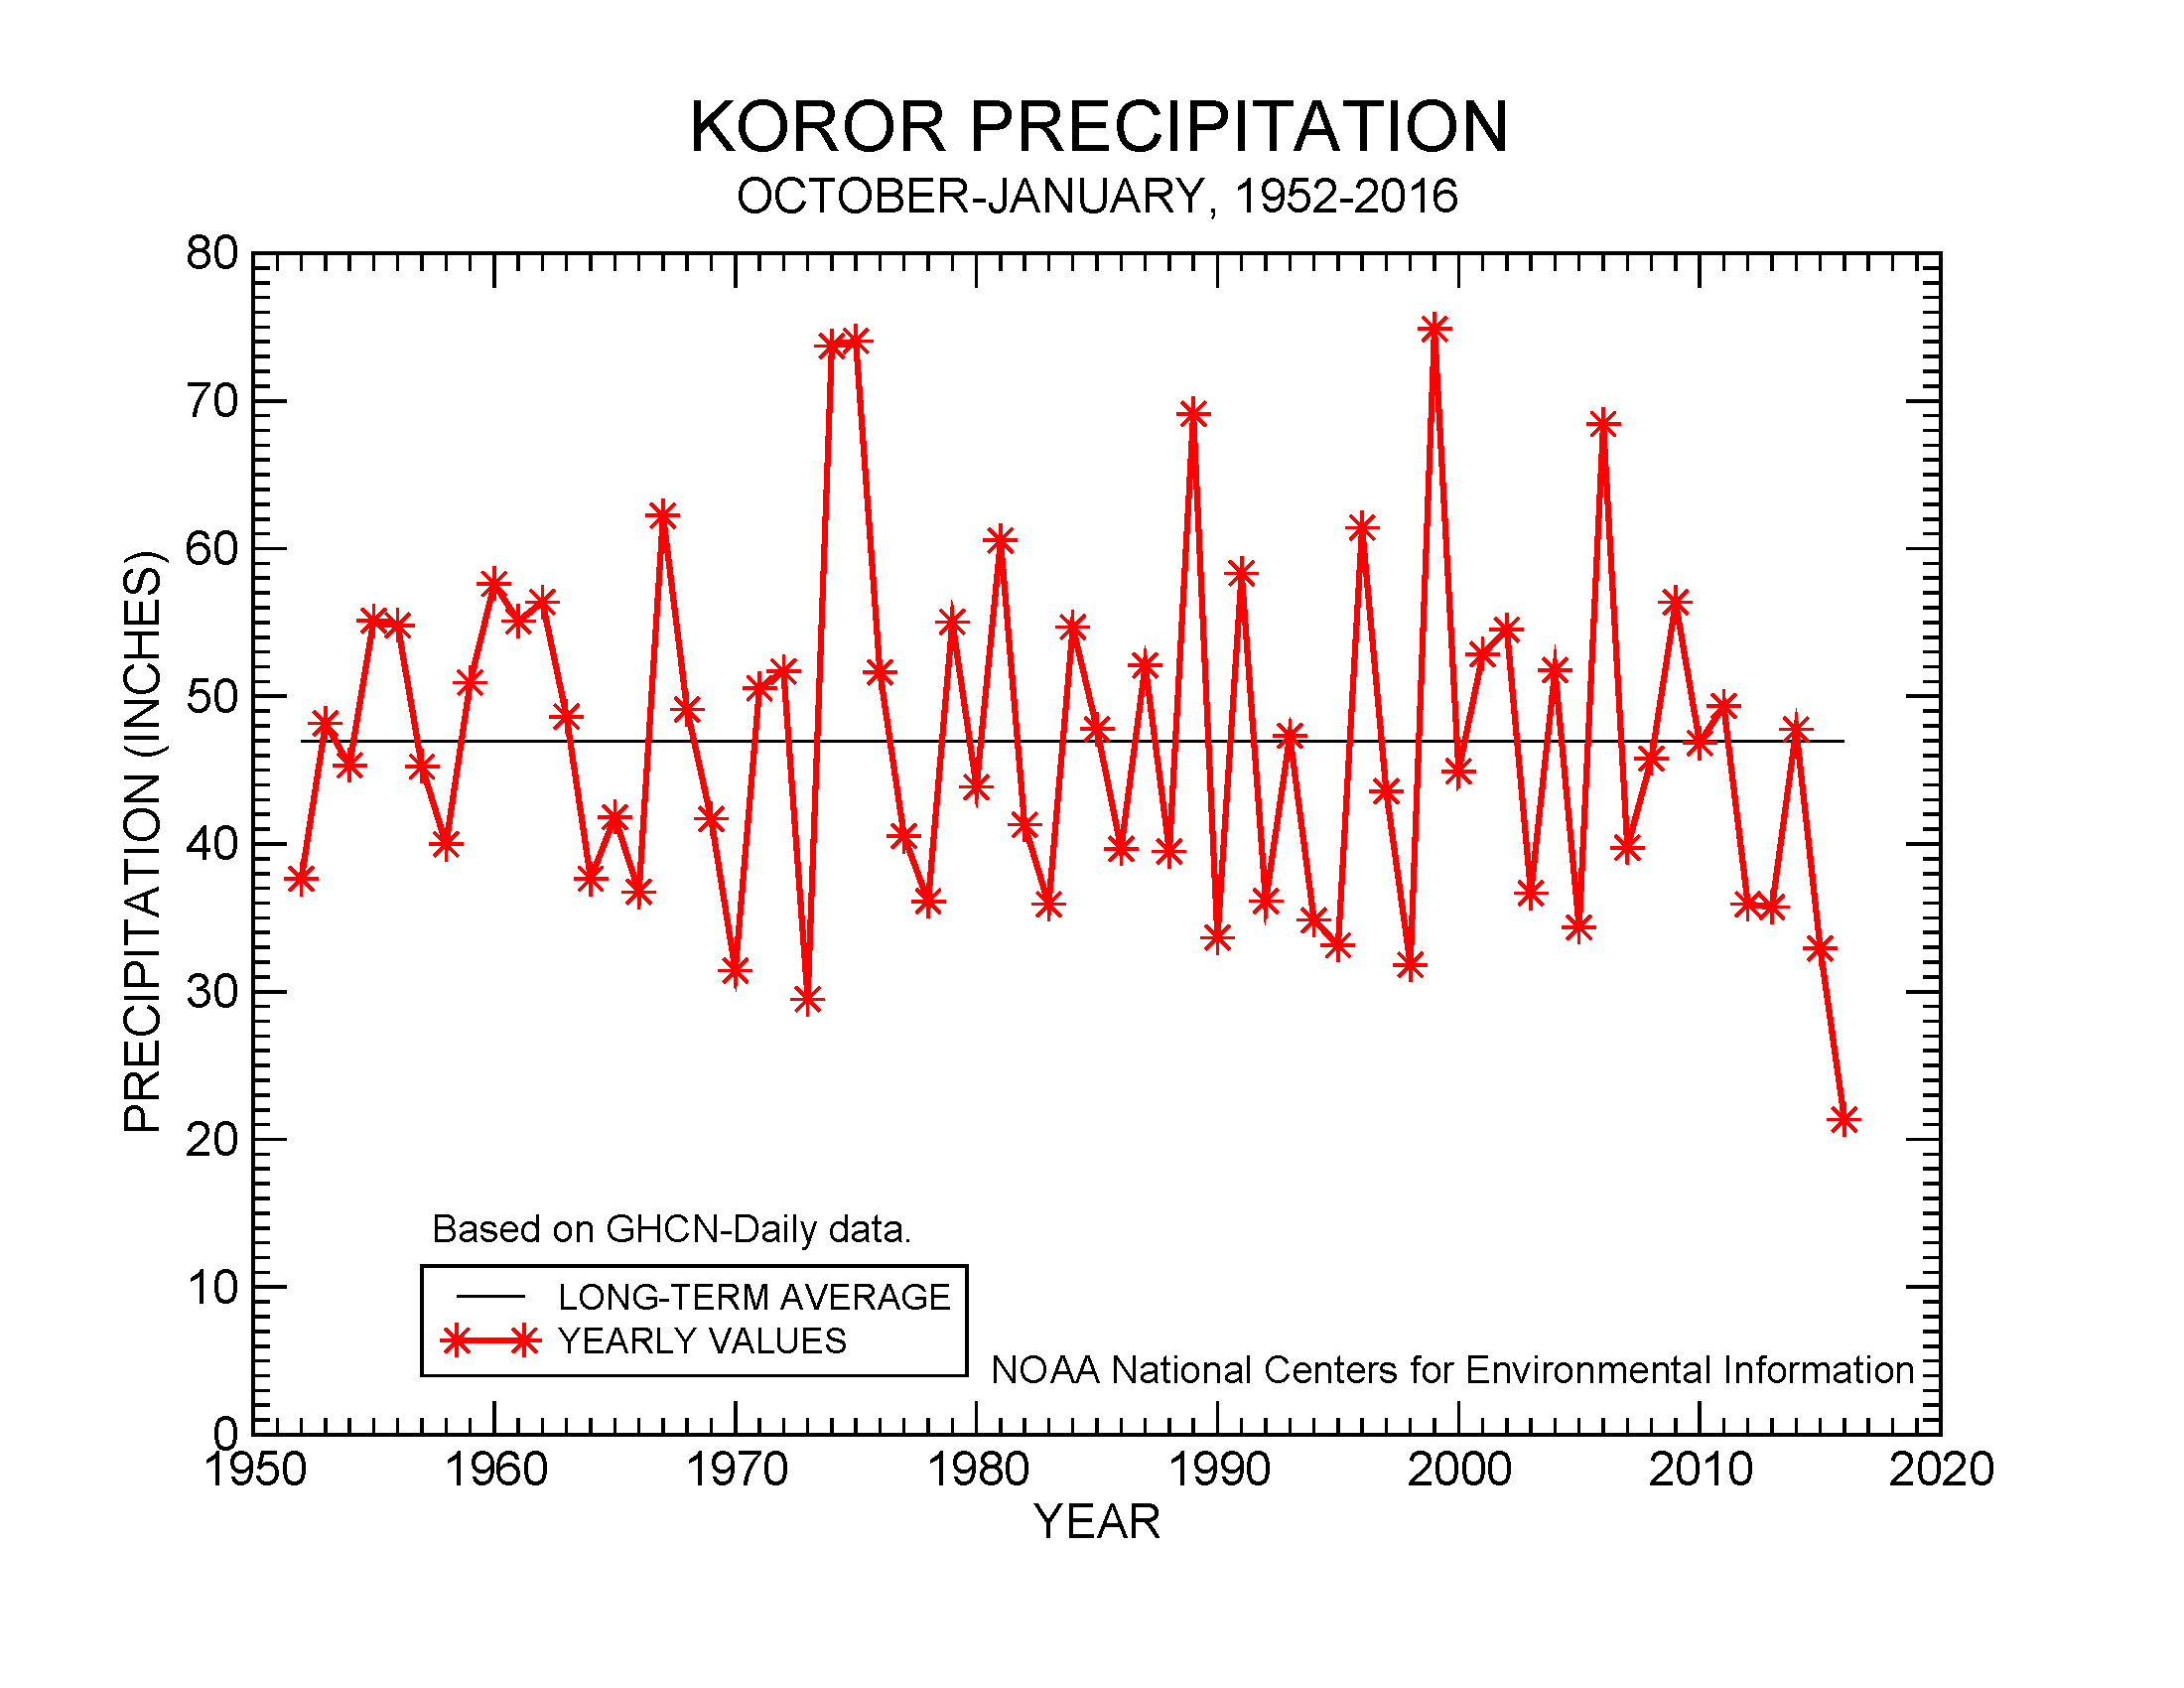 October-January precipitation for Koror, 1952-2016